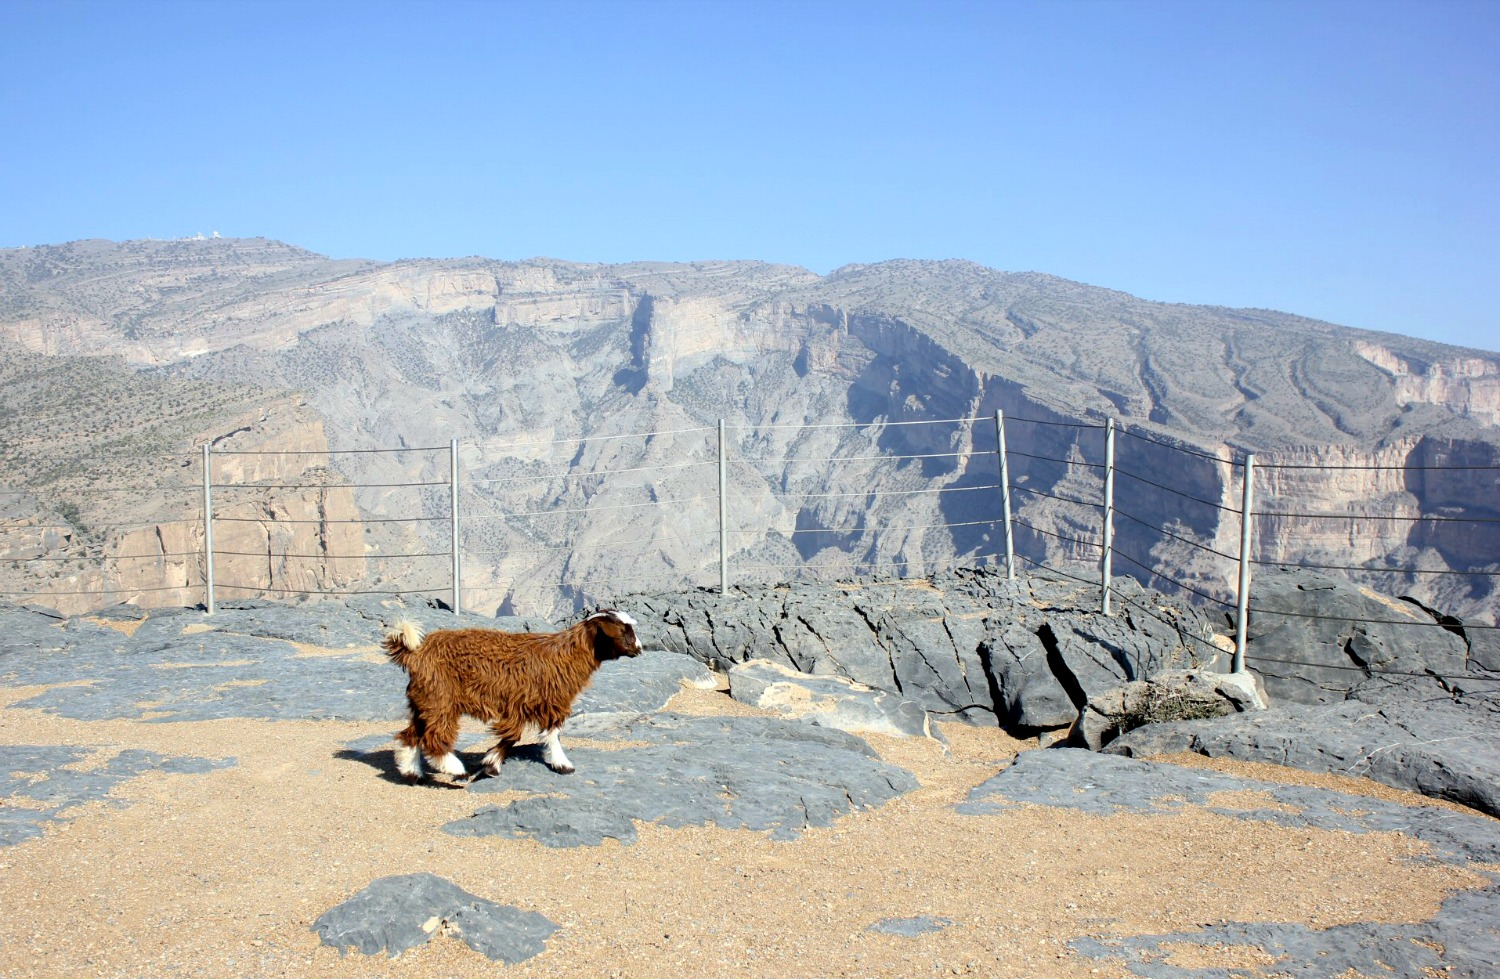 A goat wanders past the fenced edge of the canyon at Jebel Shams, the highest mountain in Oman - my nine reasons to visit Oman with kids